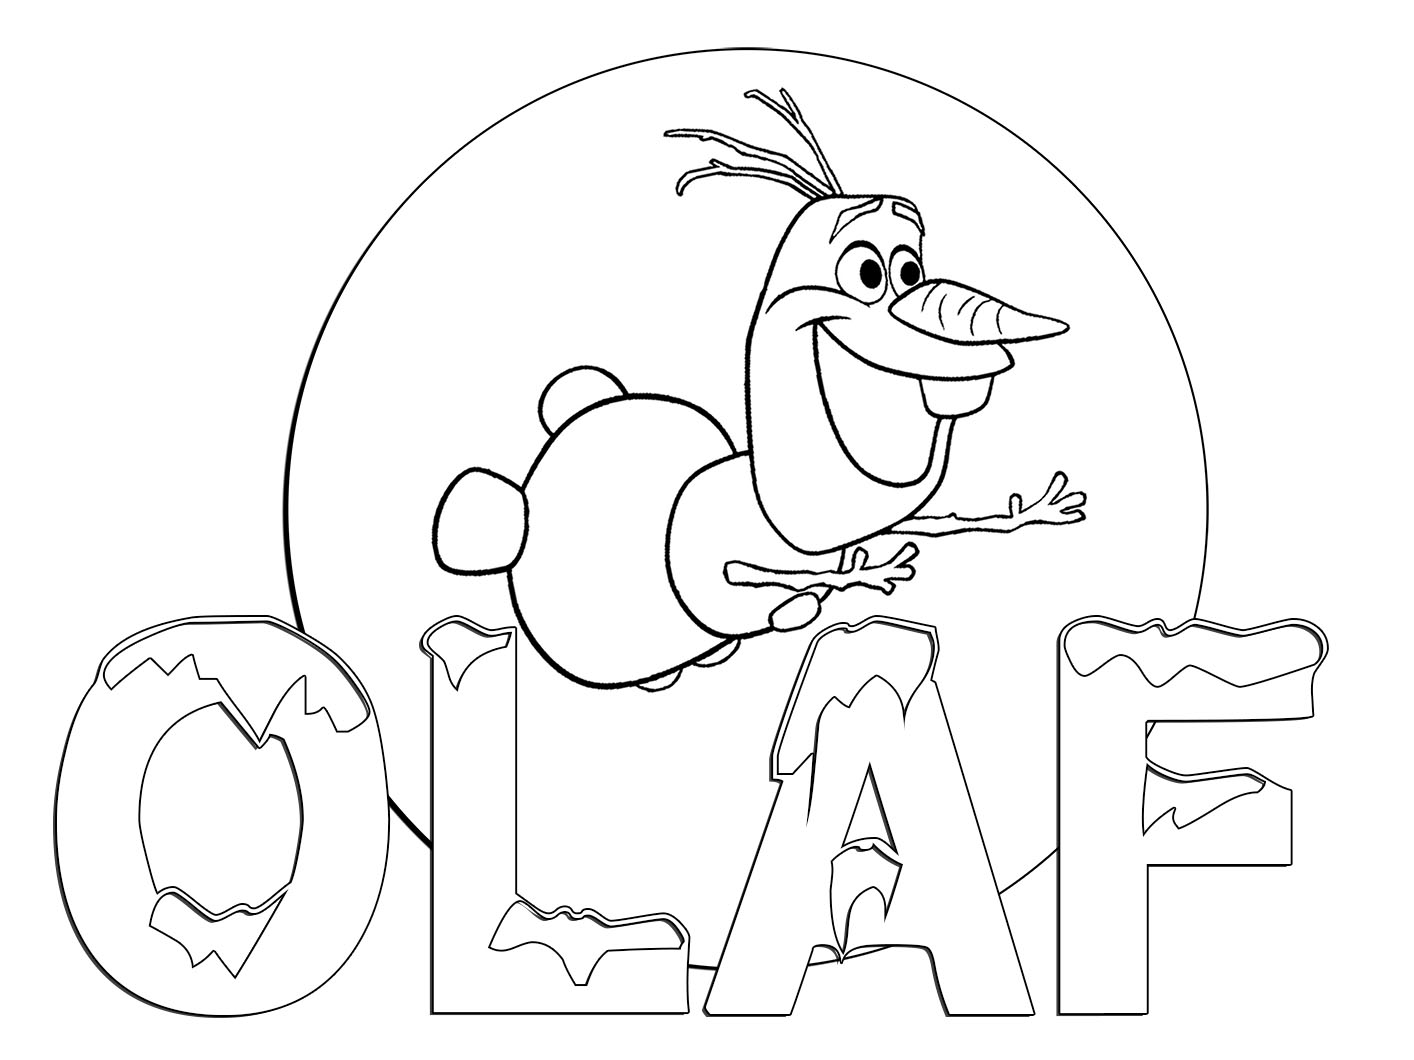 coloring pages for kdis - photo#2